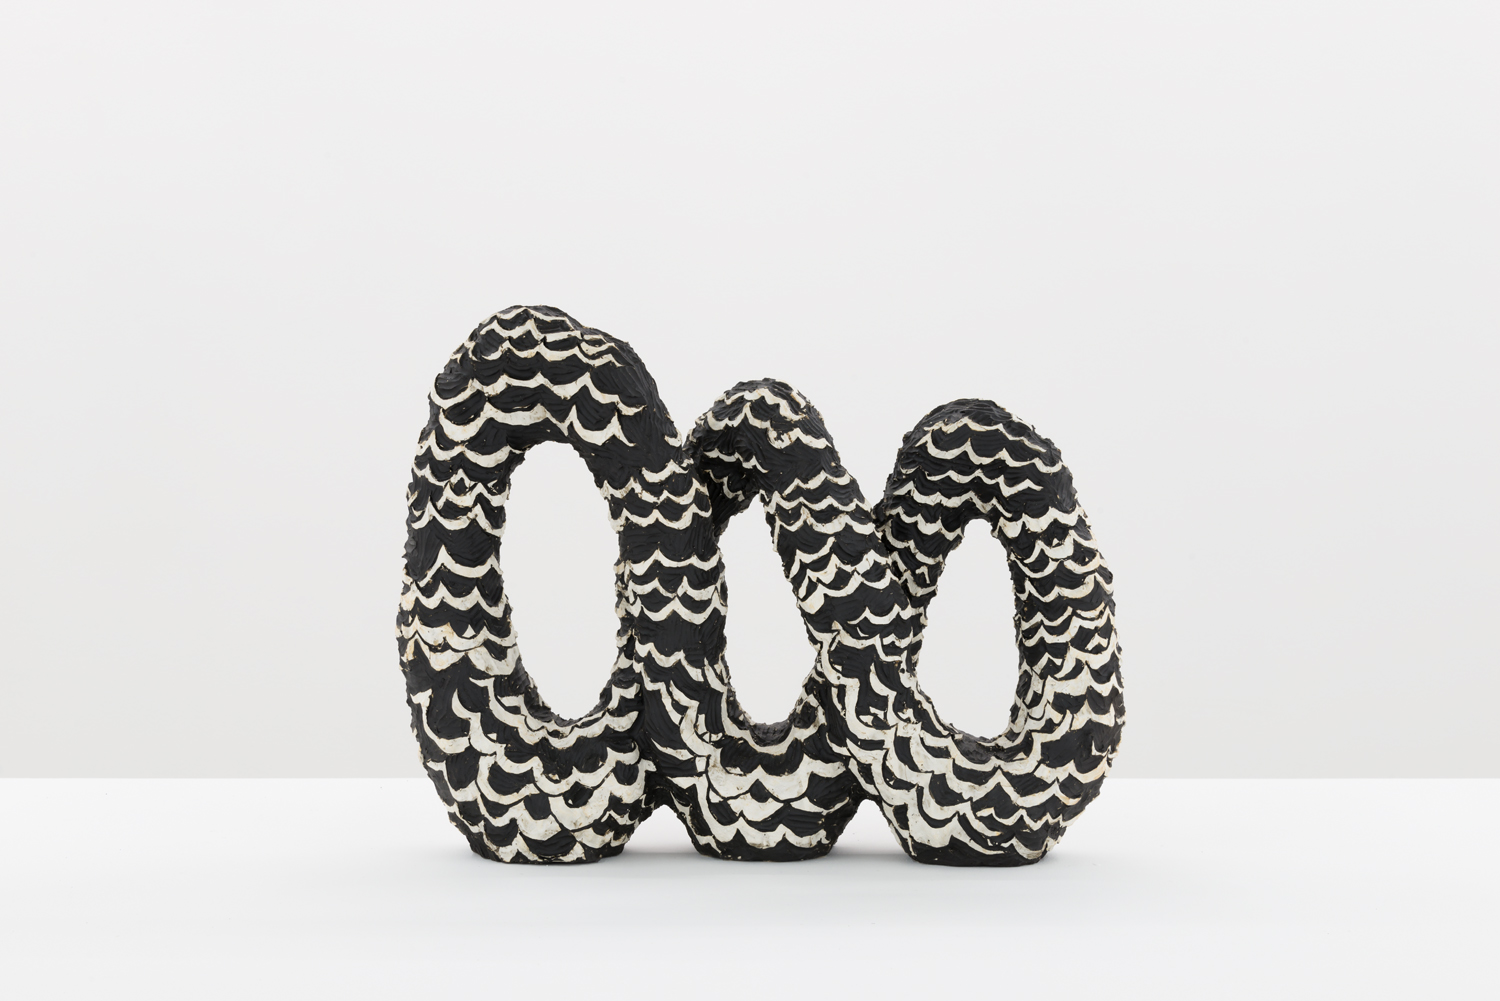 Julia Haft-Candell's Infinity: Water, a black ceramic infinity with three looks and raised white waves